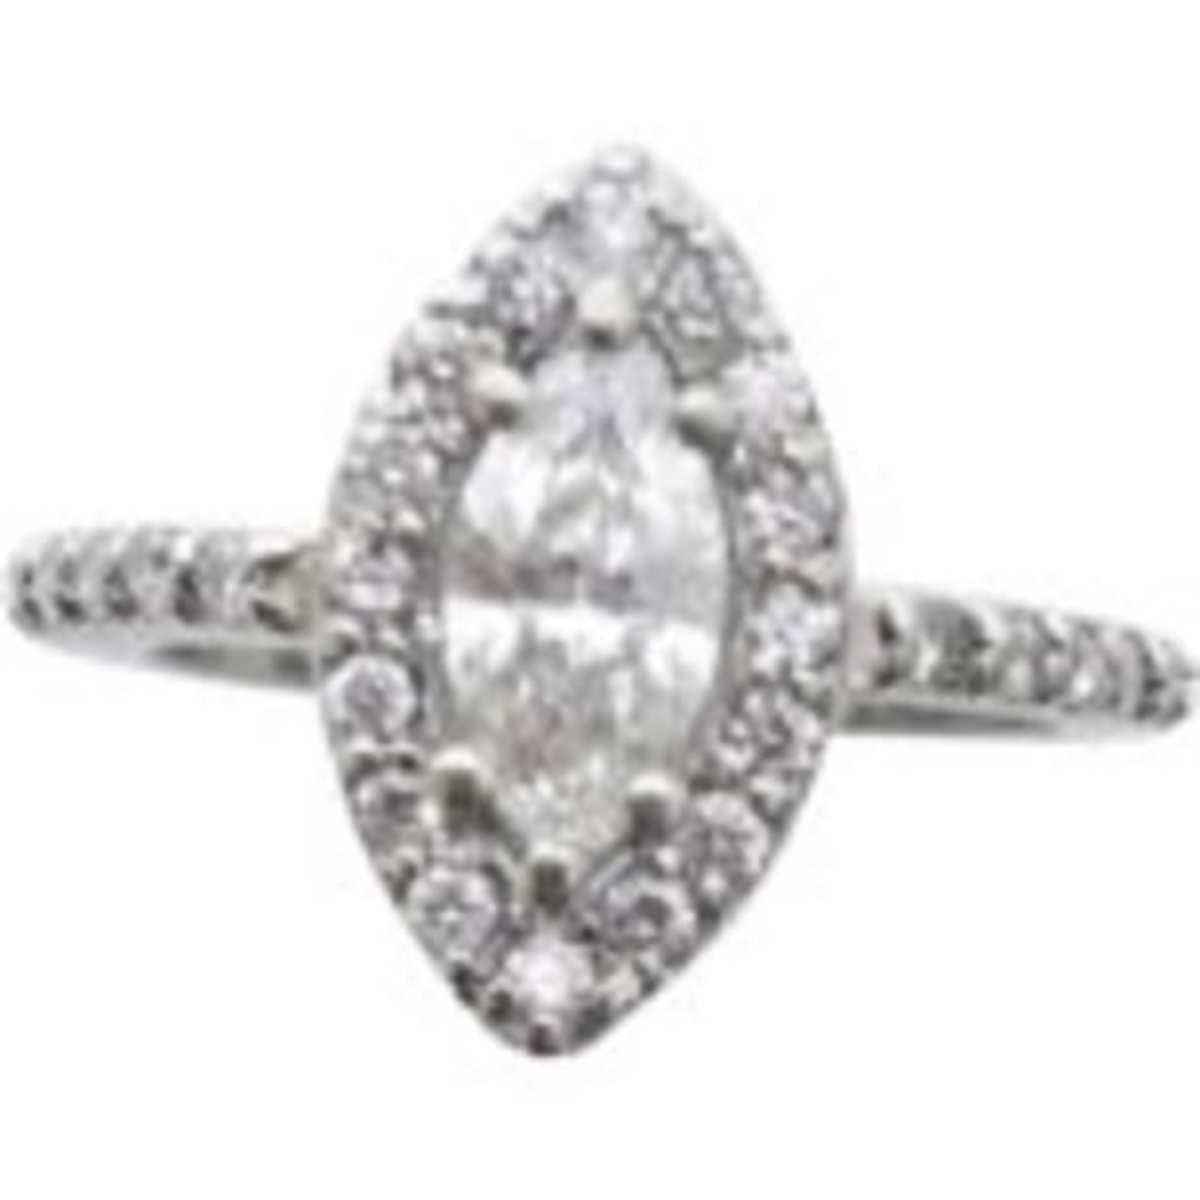 Modern marquis diamond engagement ring, $995.